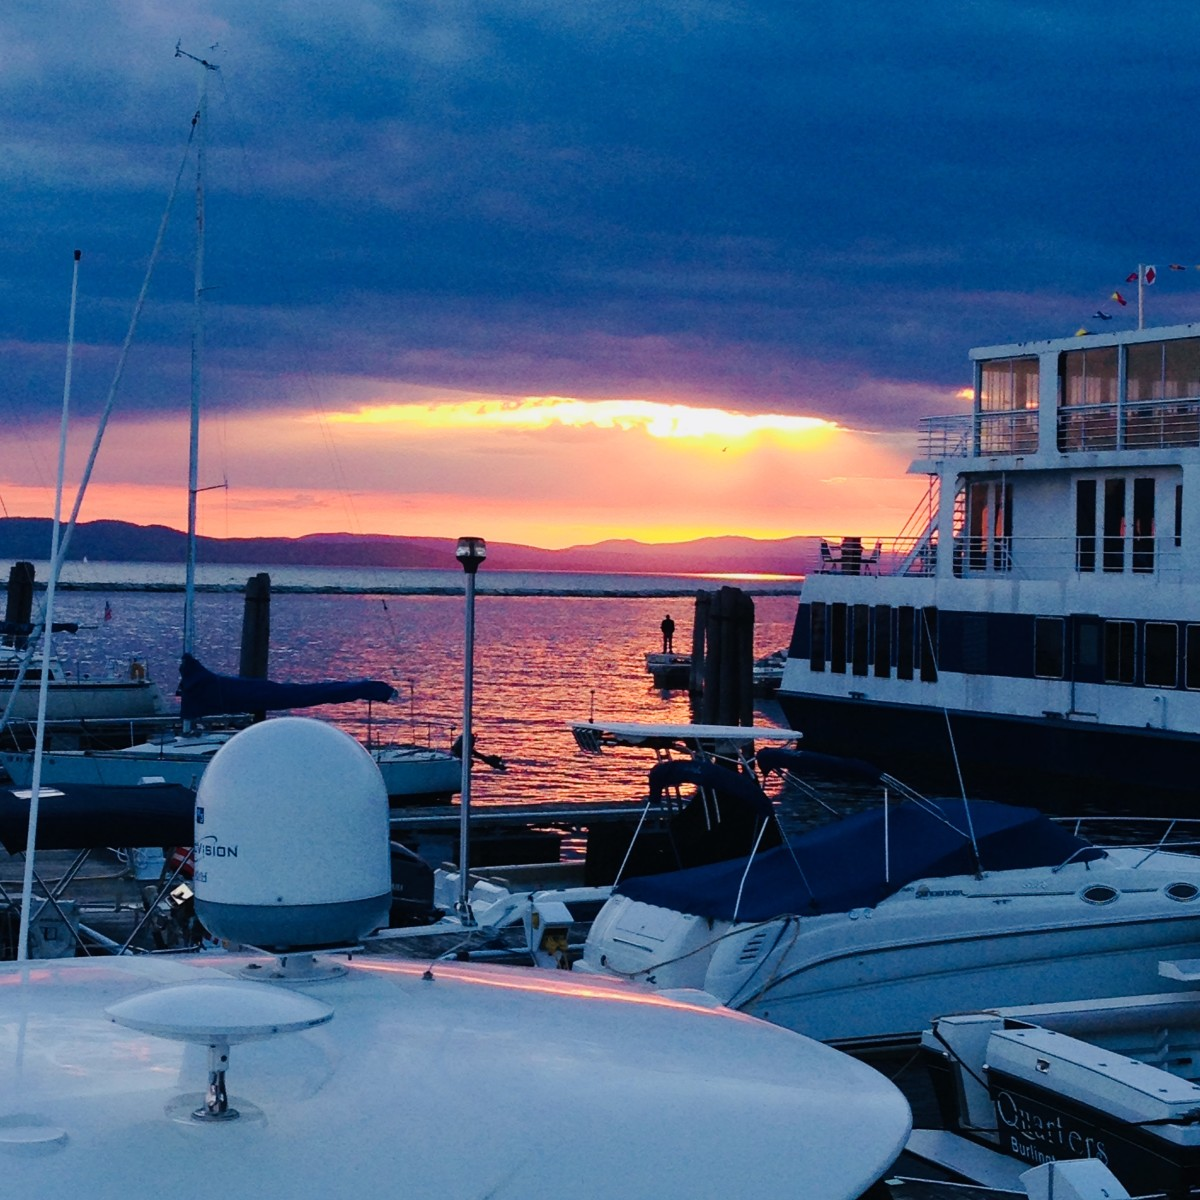 A Local's Guide to the Best Places to Visit in Burlington, VT